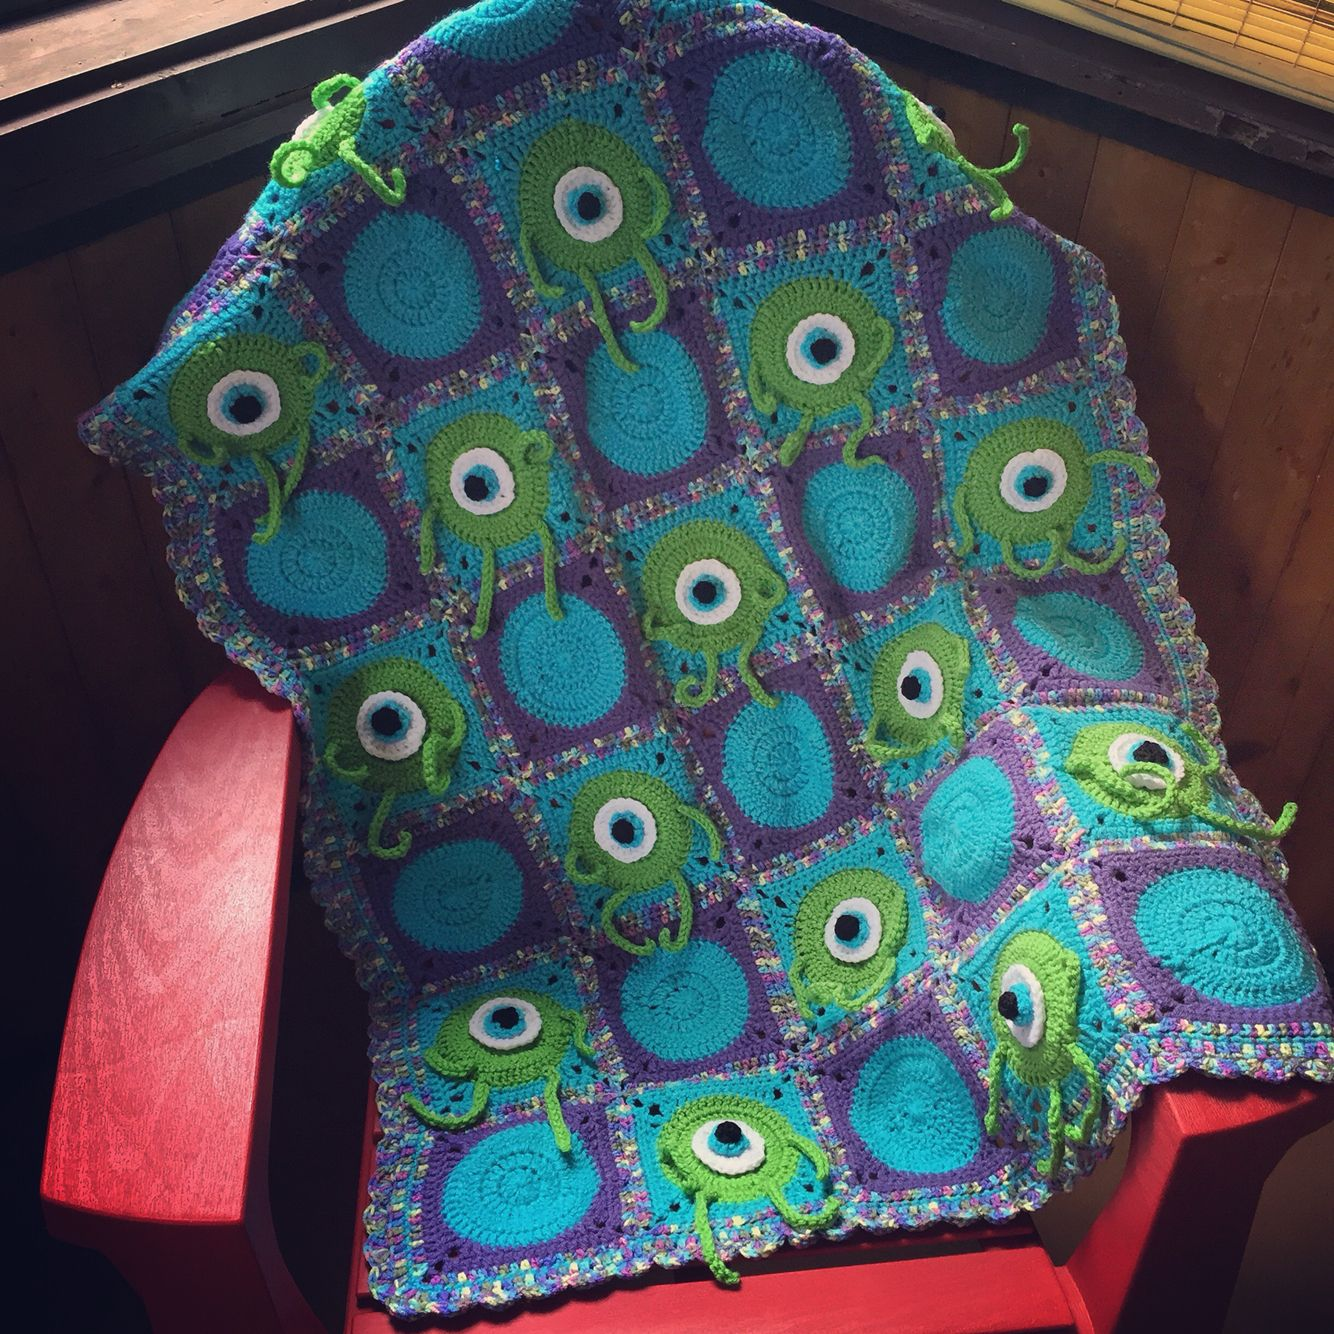 Monsters Inc Crocheted Blanket Made By Anna At Creekwood Crochet Www